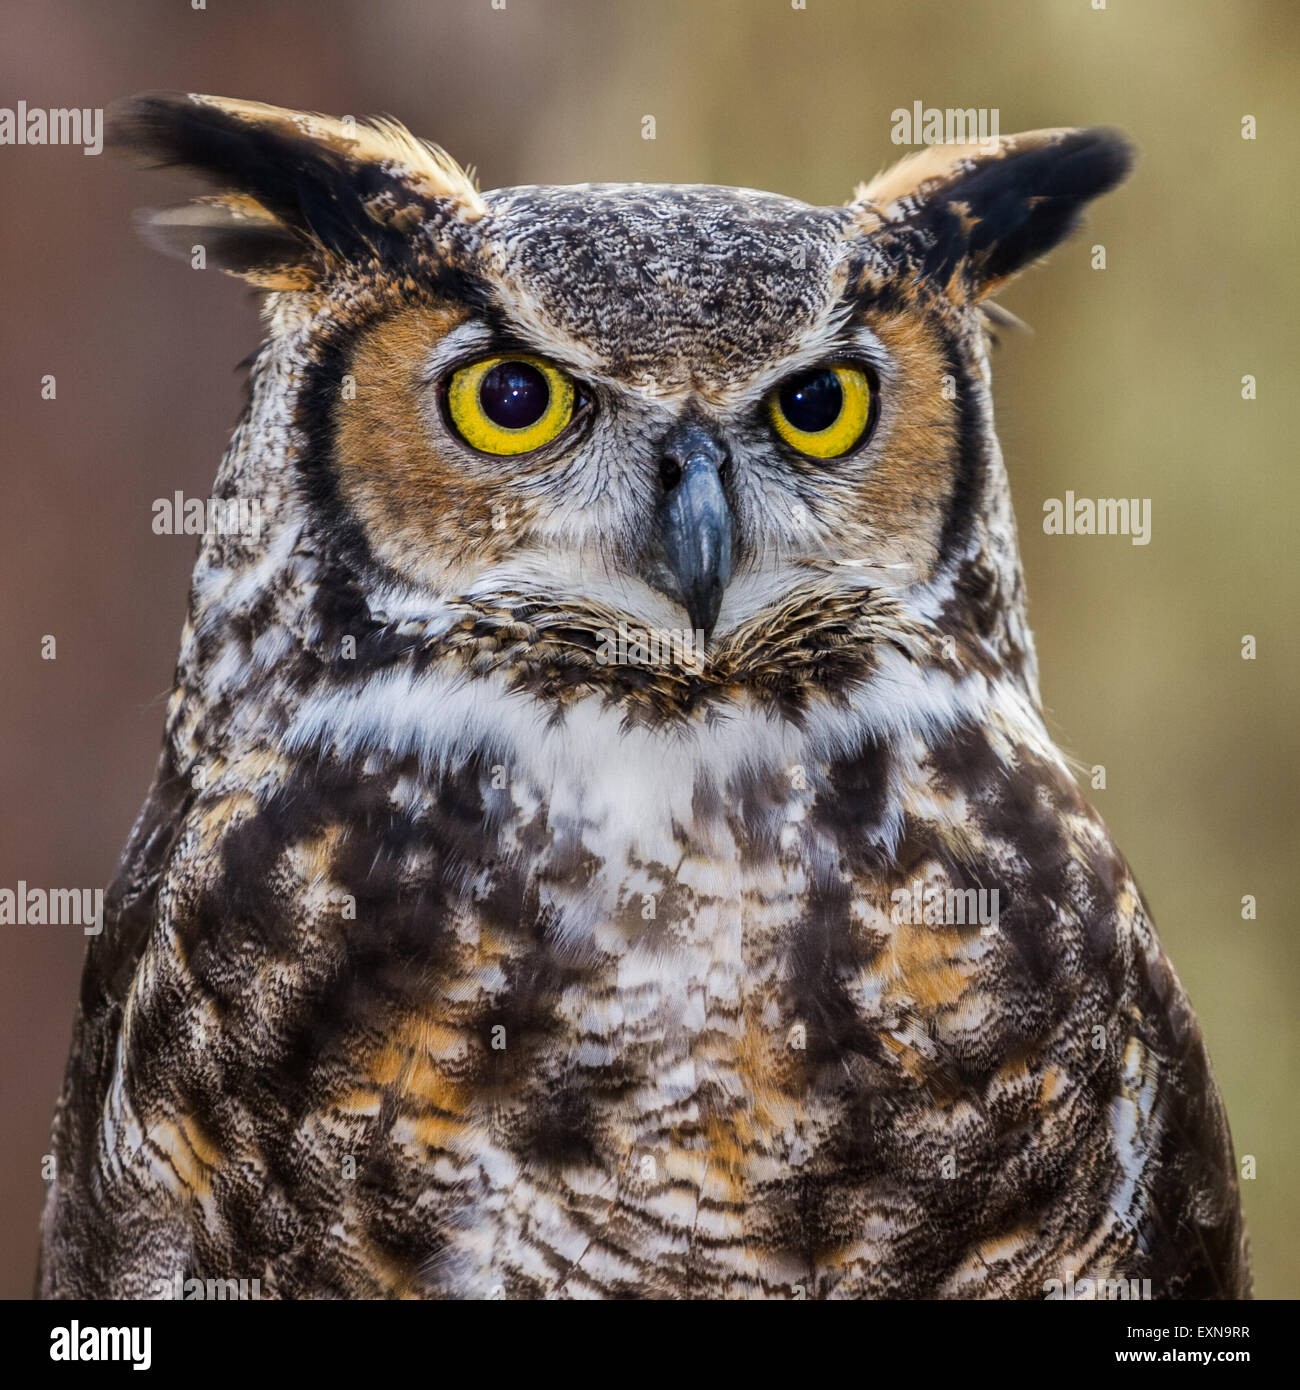 A closeup of a great horned owl. - Stock Image